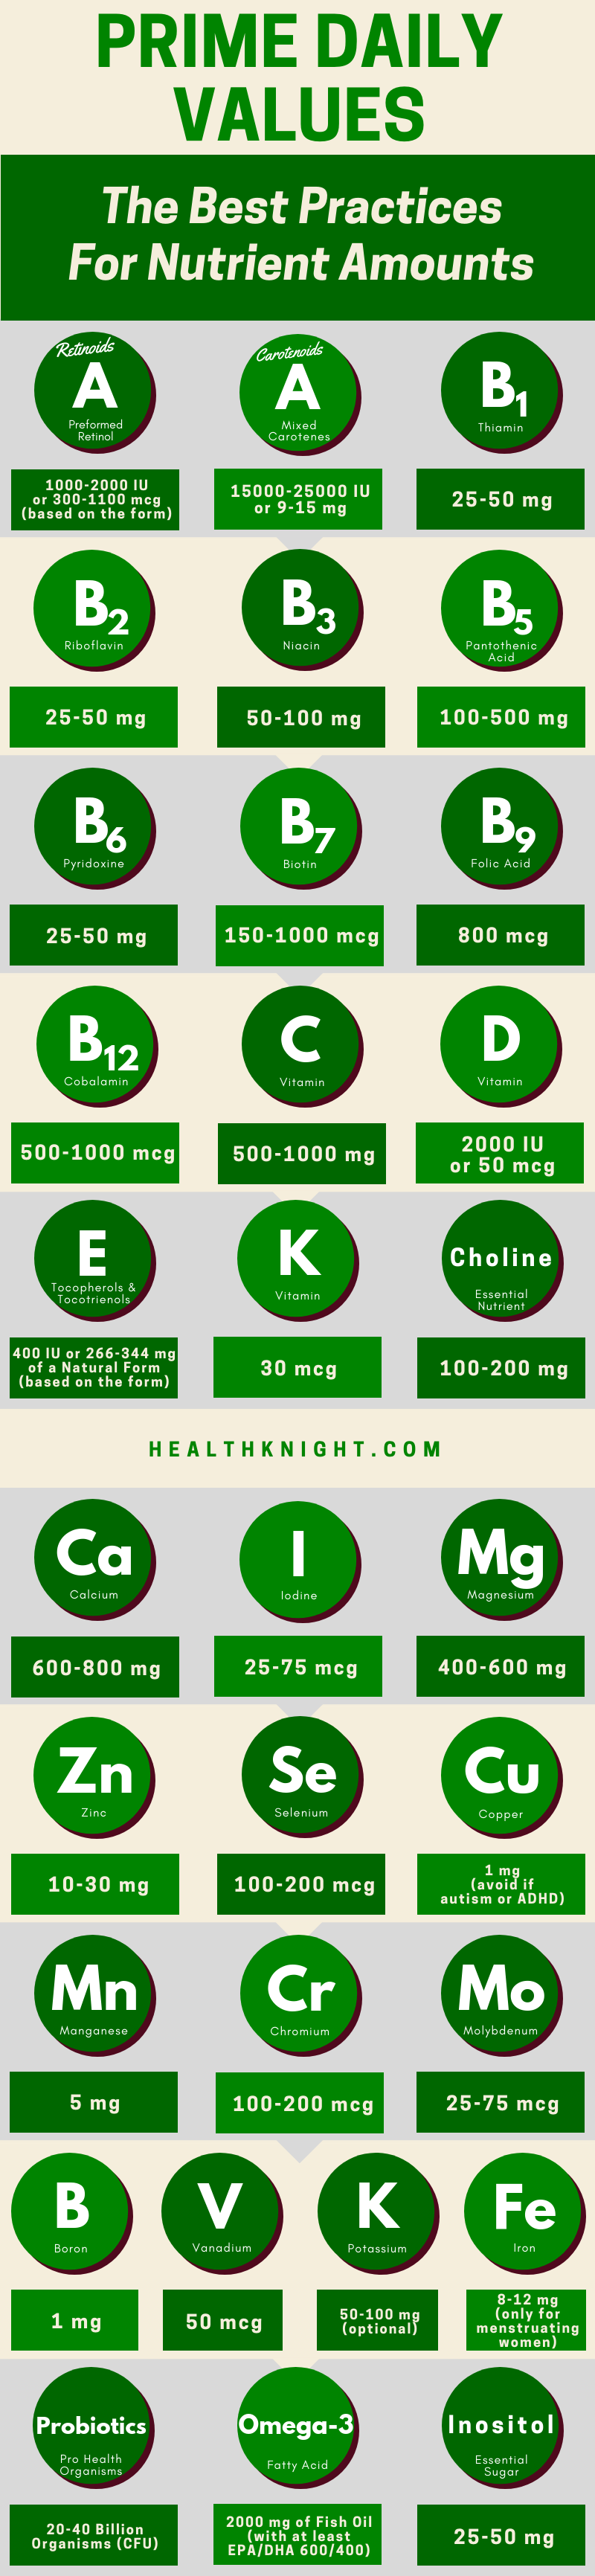 Prime Daily Values Infographic (The Best Practices For Nutrient Amounts)